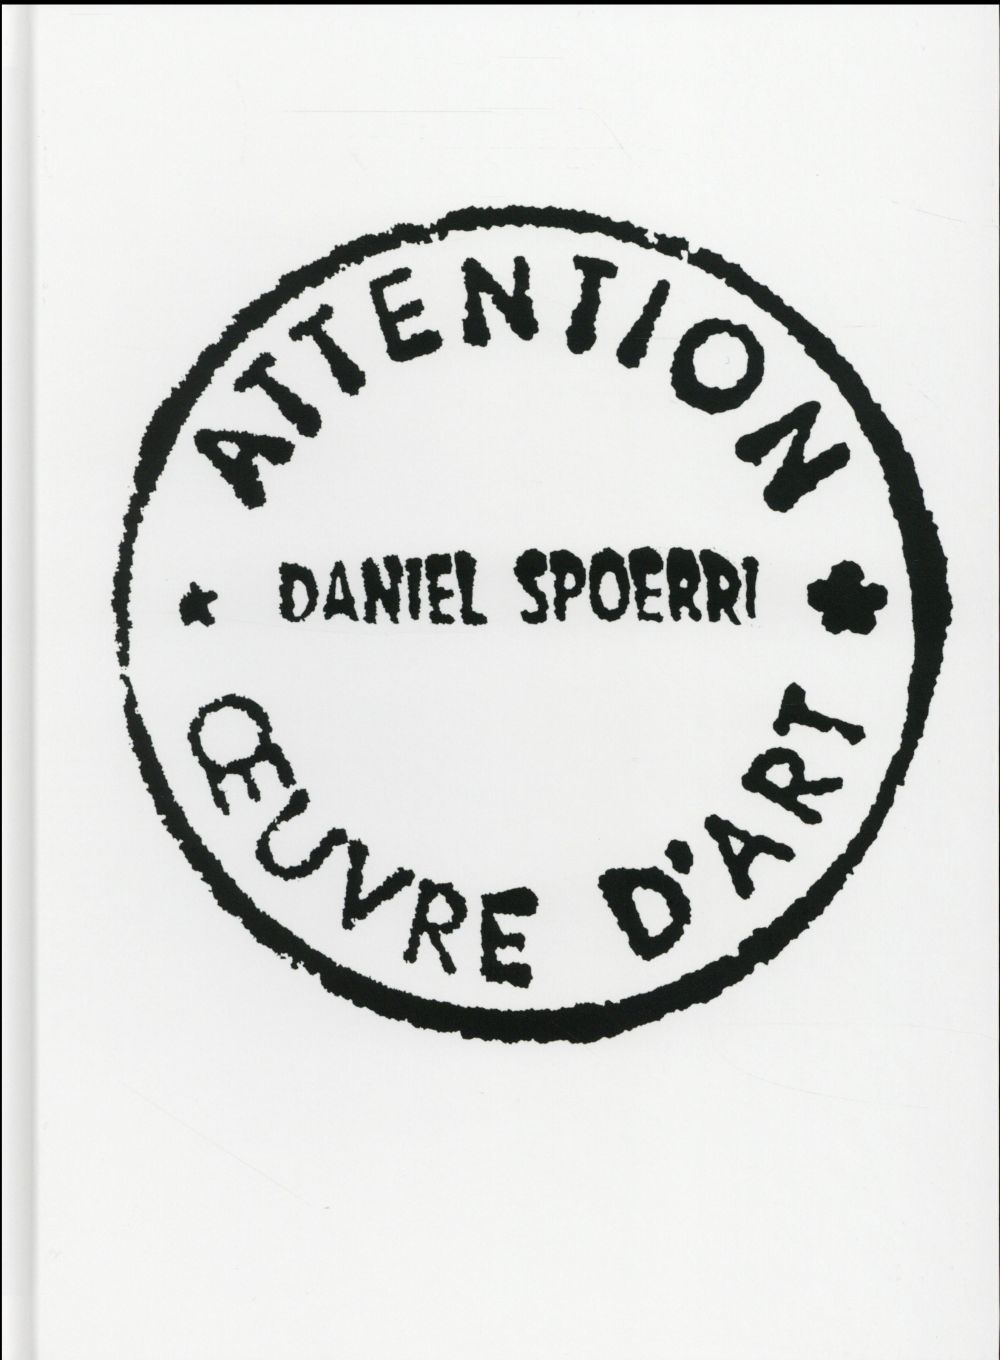 ATTENTION OEUVRE D'ART